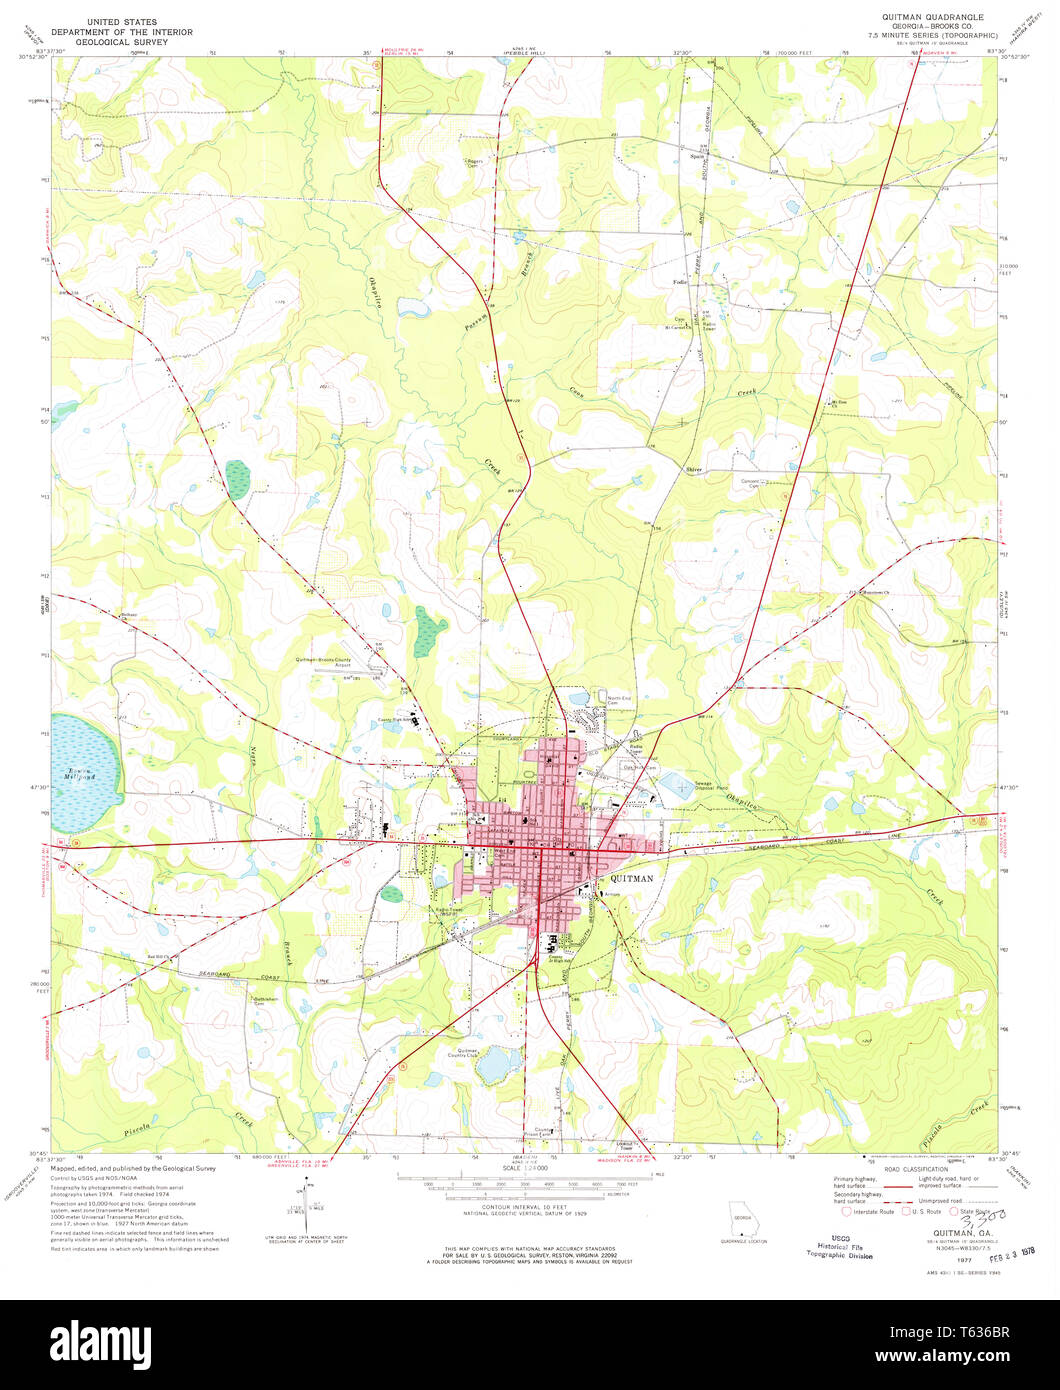 Map Of Quitman Ga.Usgs Topo Map Georgia Ga Quitman 246688 1977 24000 Restoration Stock